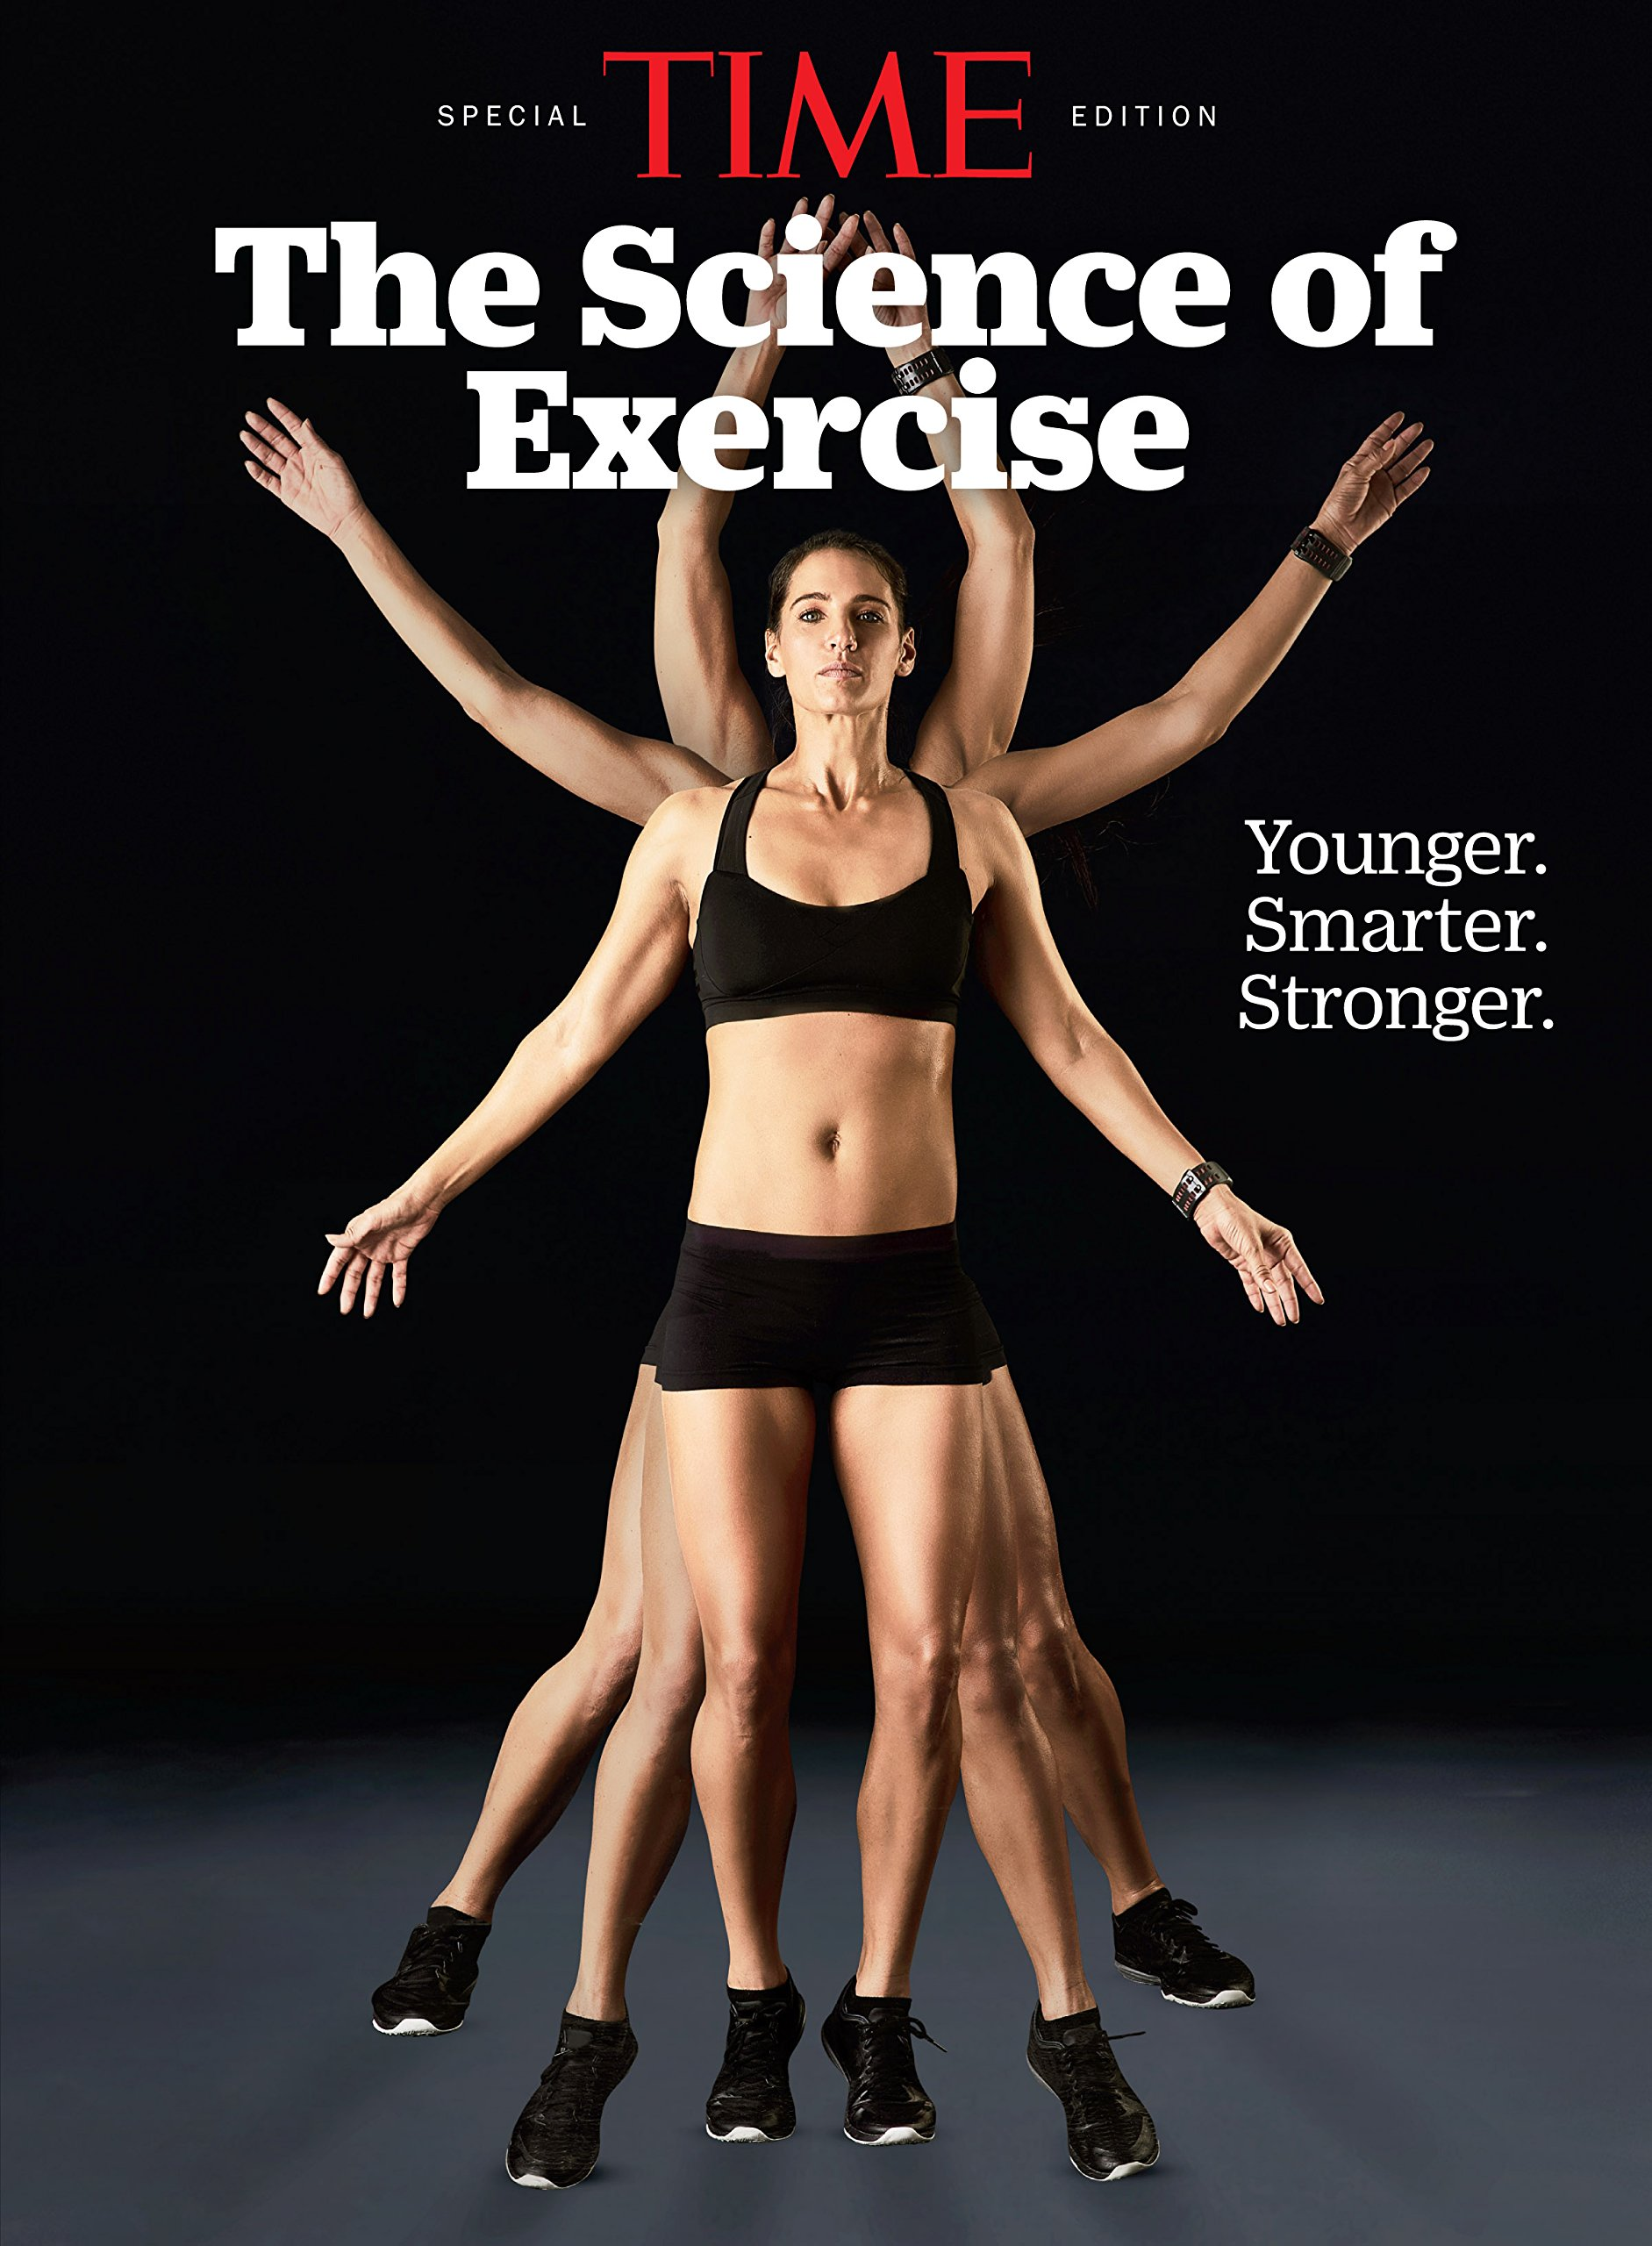 TIME The Science Of Exercise  Younger. Smarter. Stronger  English Edition